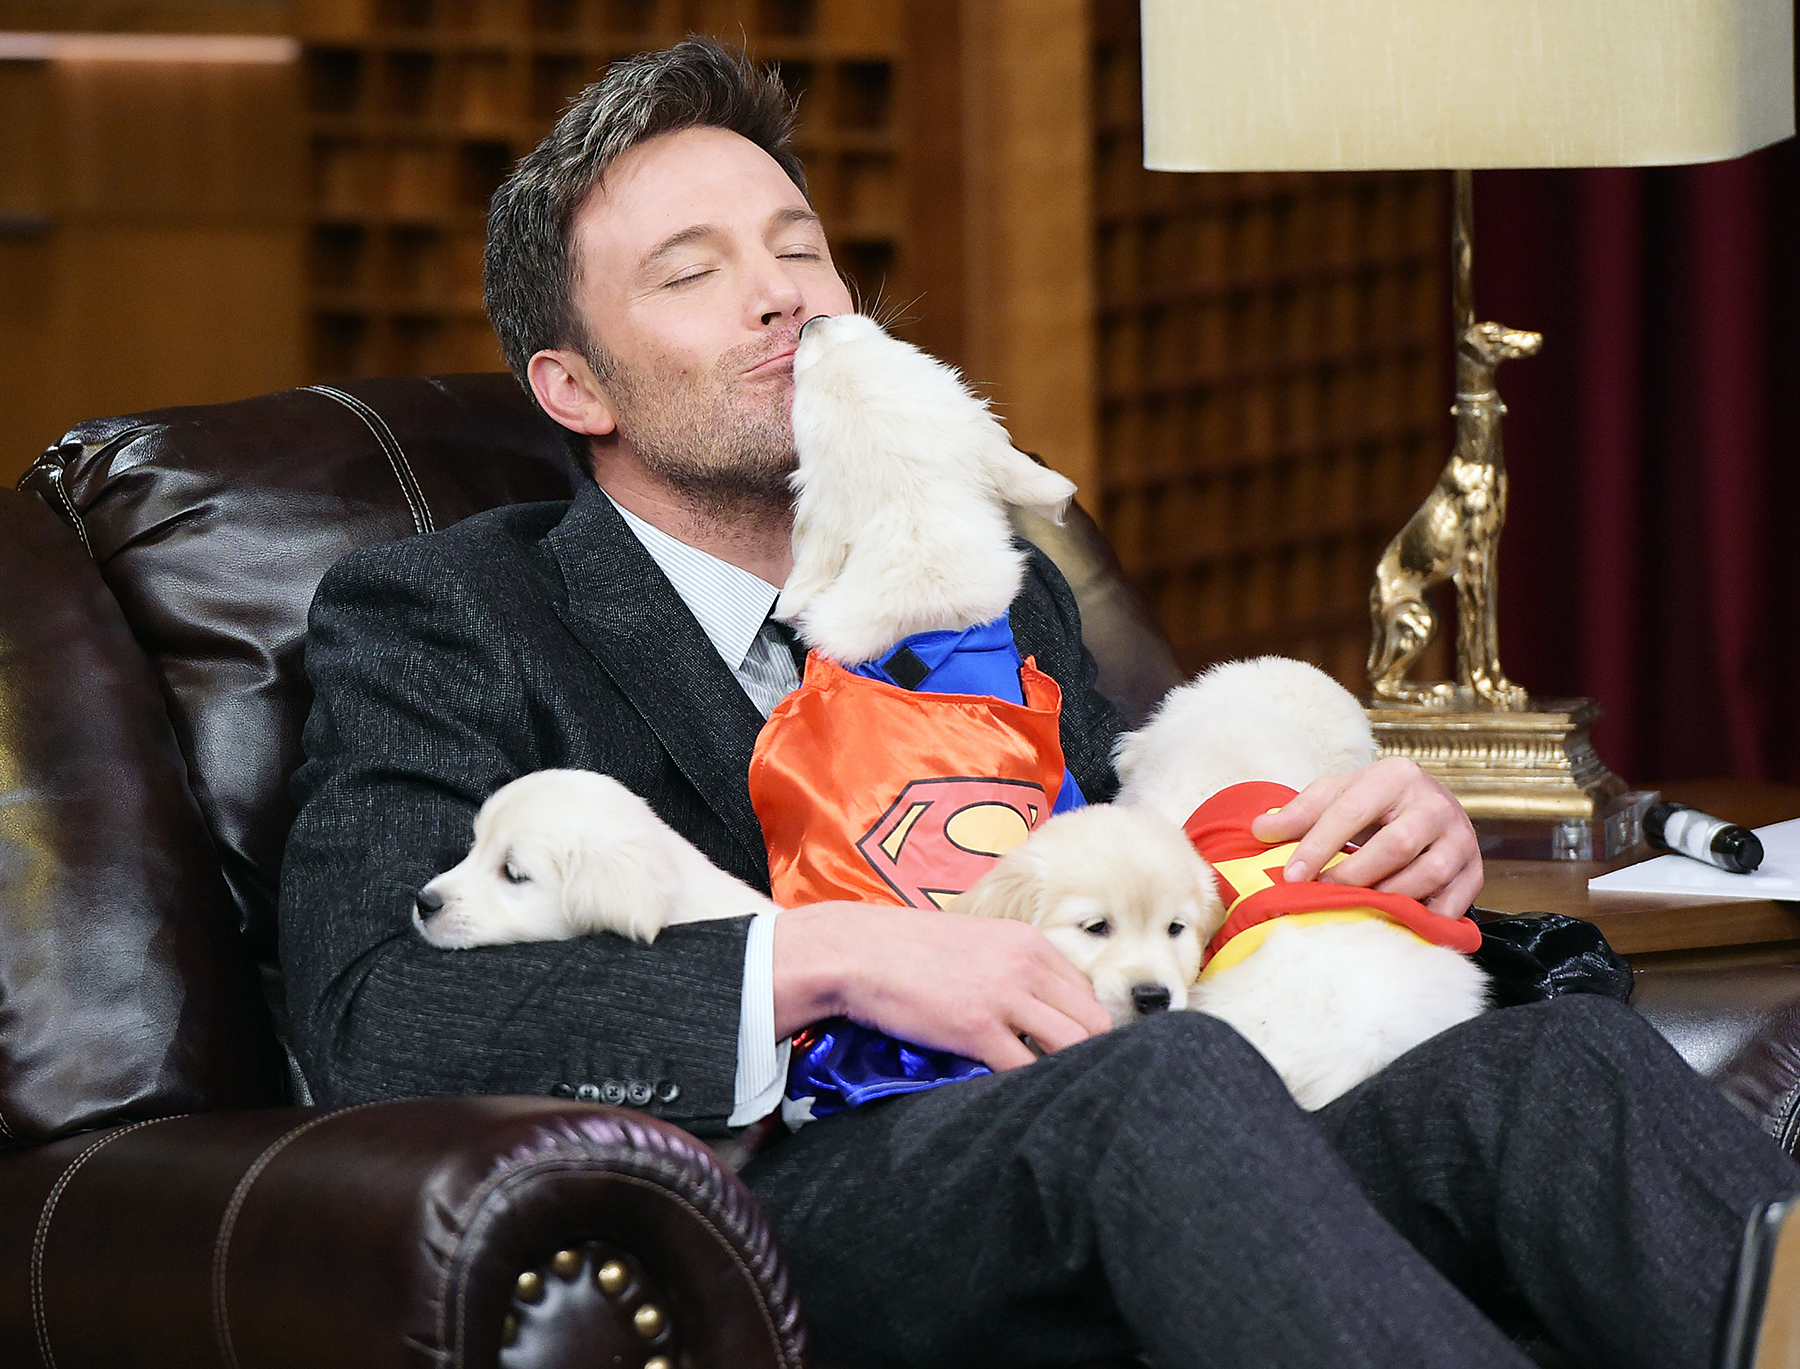 Ben Affleck with puppies